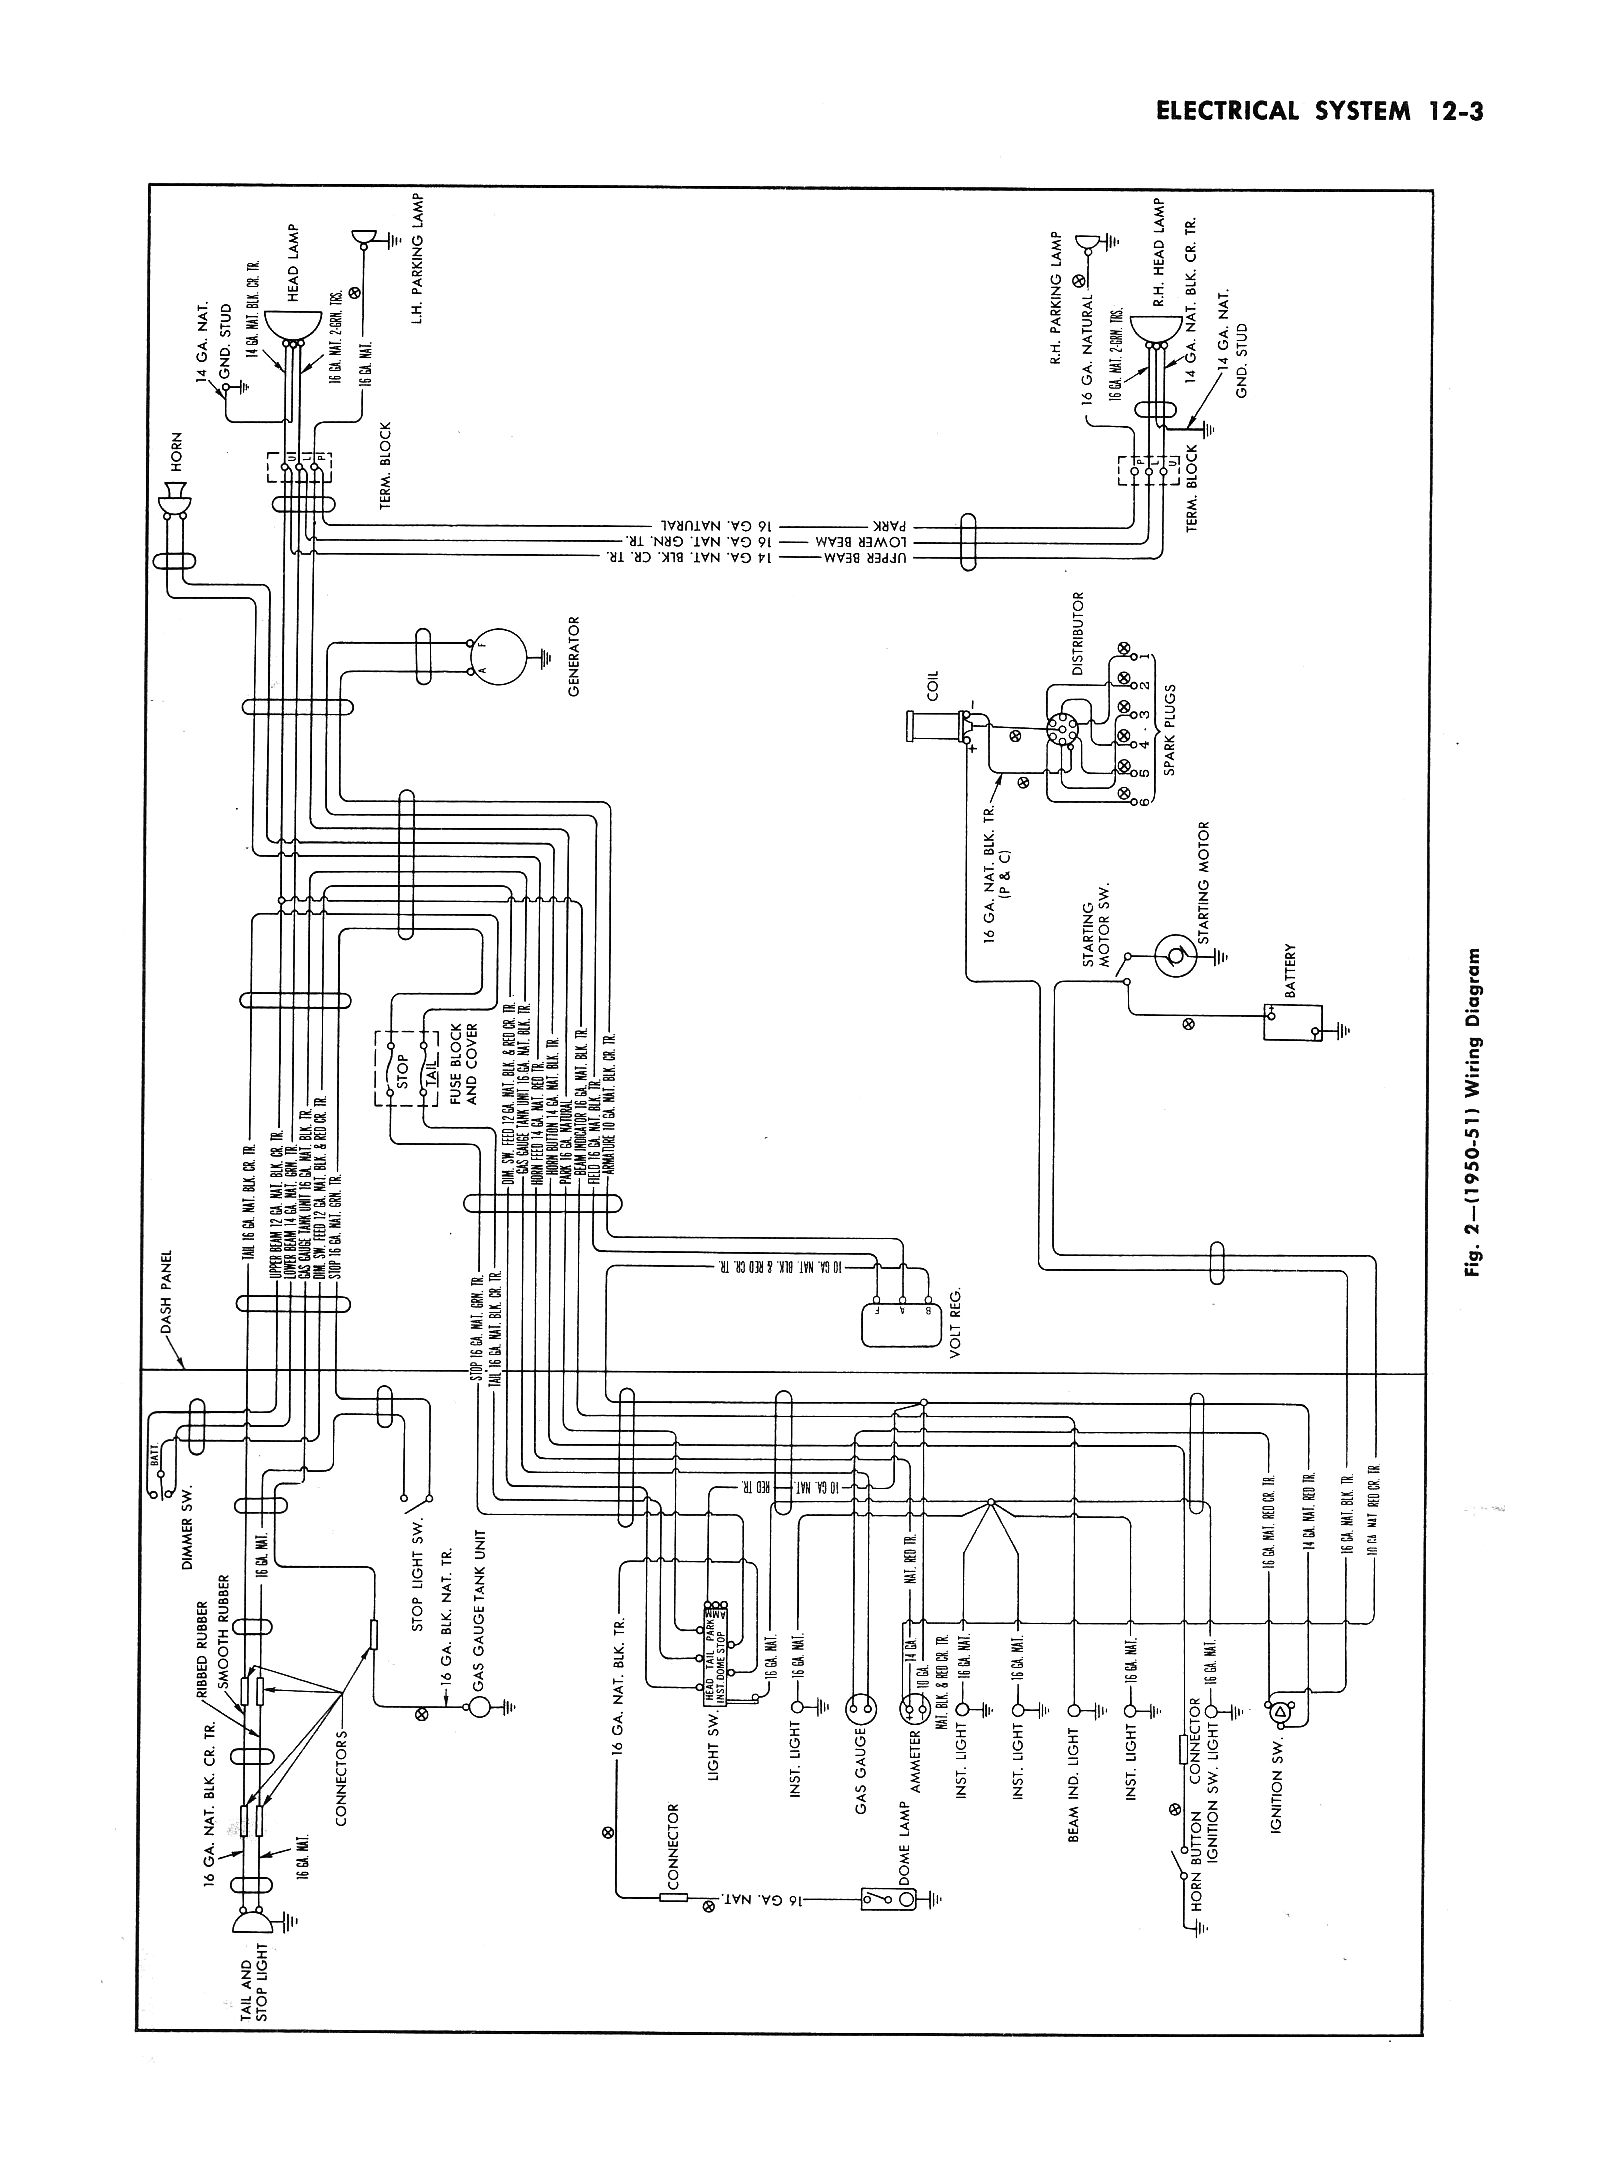 1942 Dodge Wiring Diagram Data Schematic Ram Chevy Detailed Schematics Rh Keyplusrubber Com Chrysler 1500